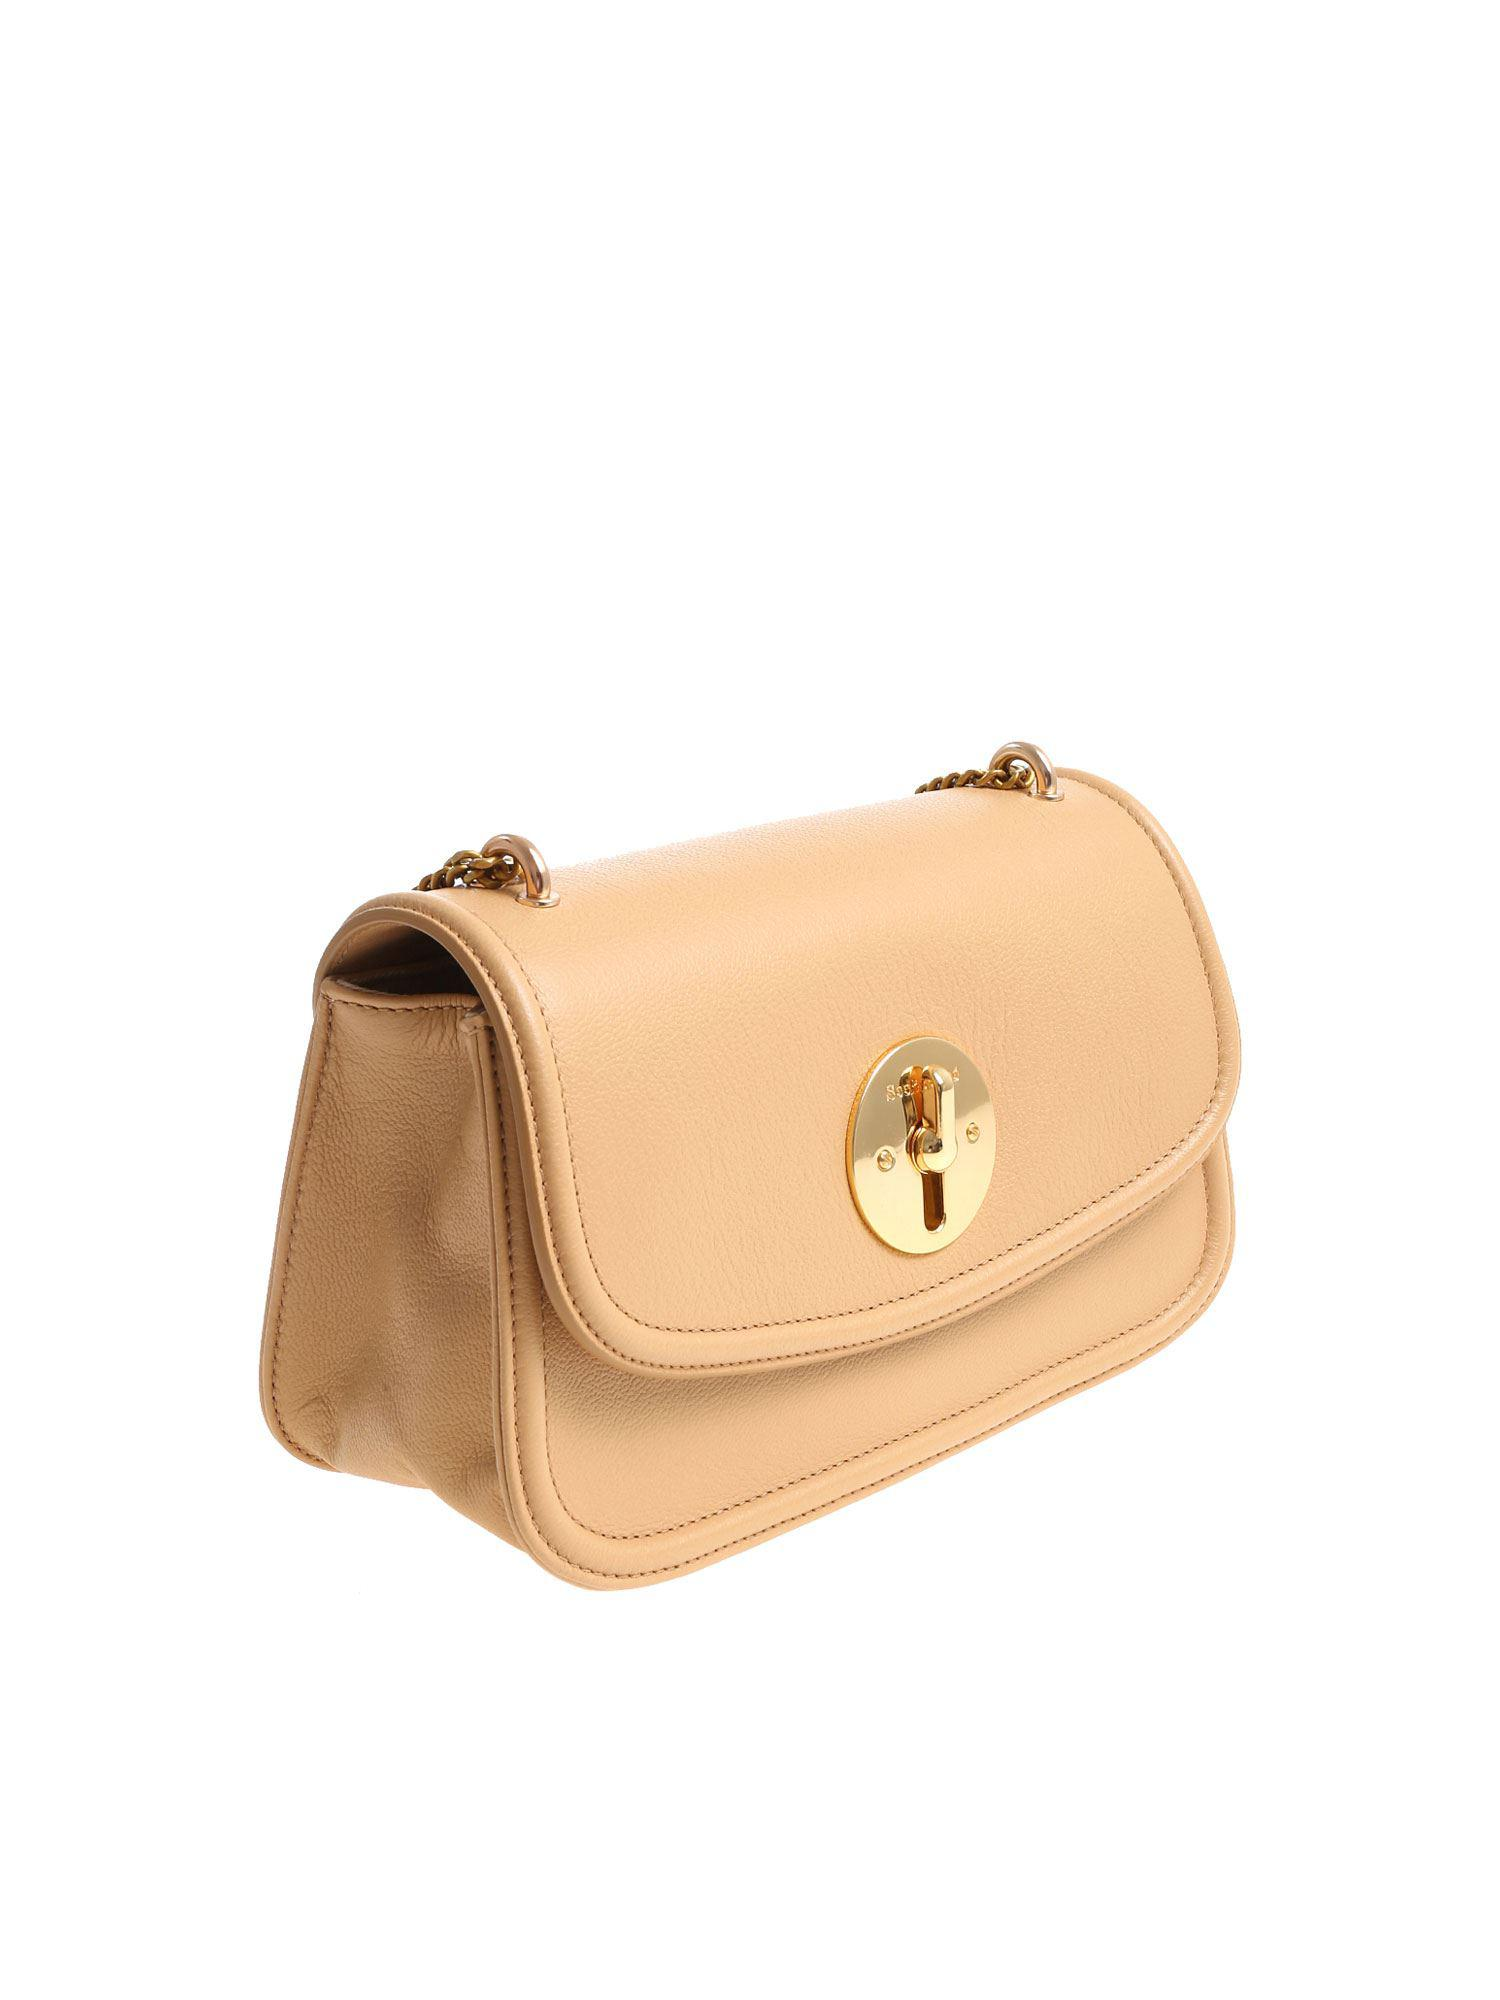 0b7da88372d ... Natural Nude Lois Shoulder Bag - Lyst. View fullscreen